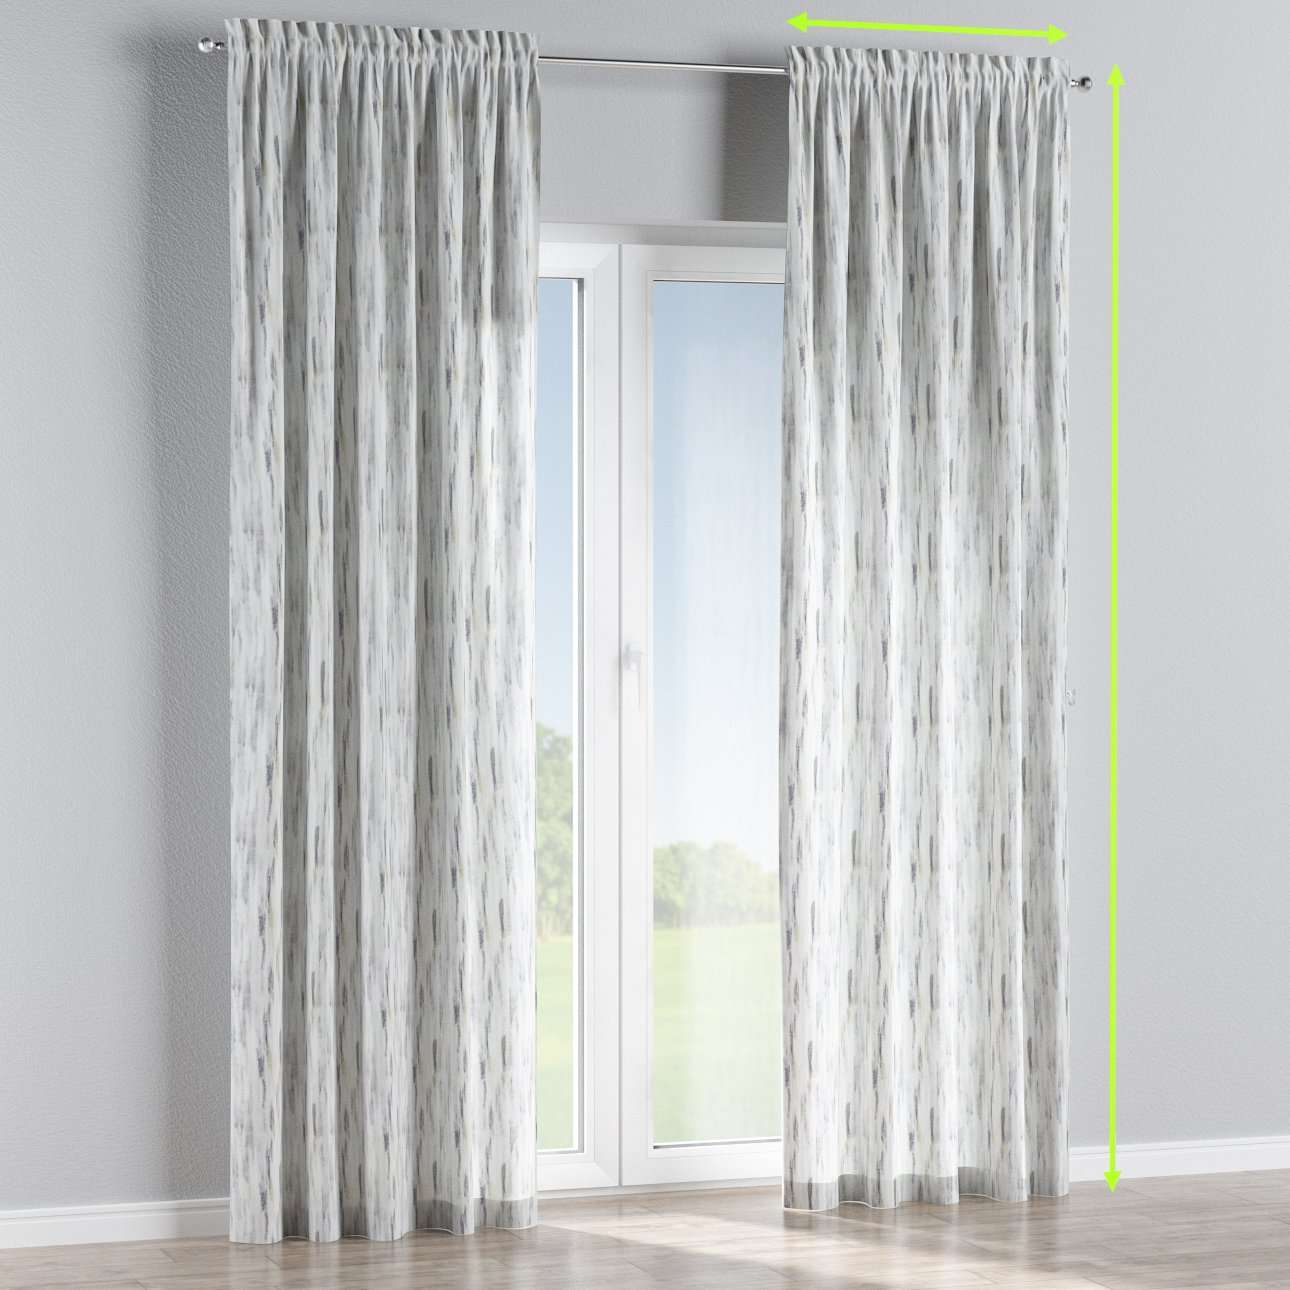 Slot and frill lined curtains in collection Aquarelle, fabric: 140-66